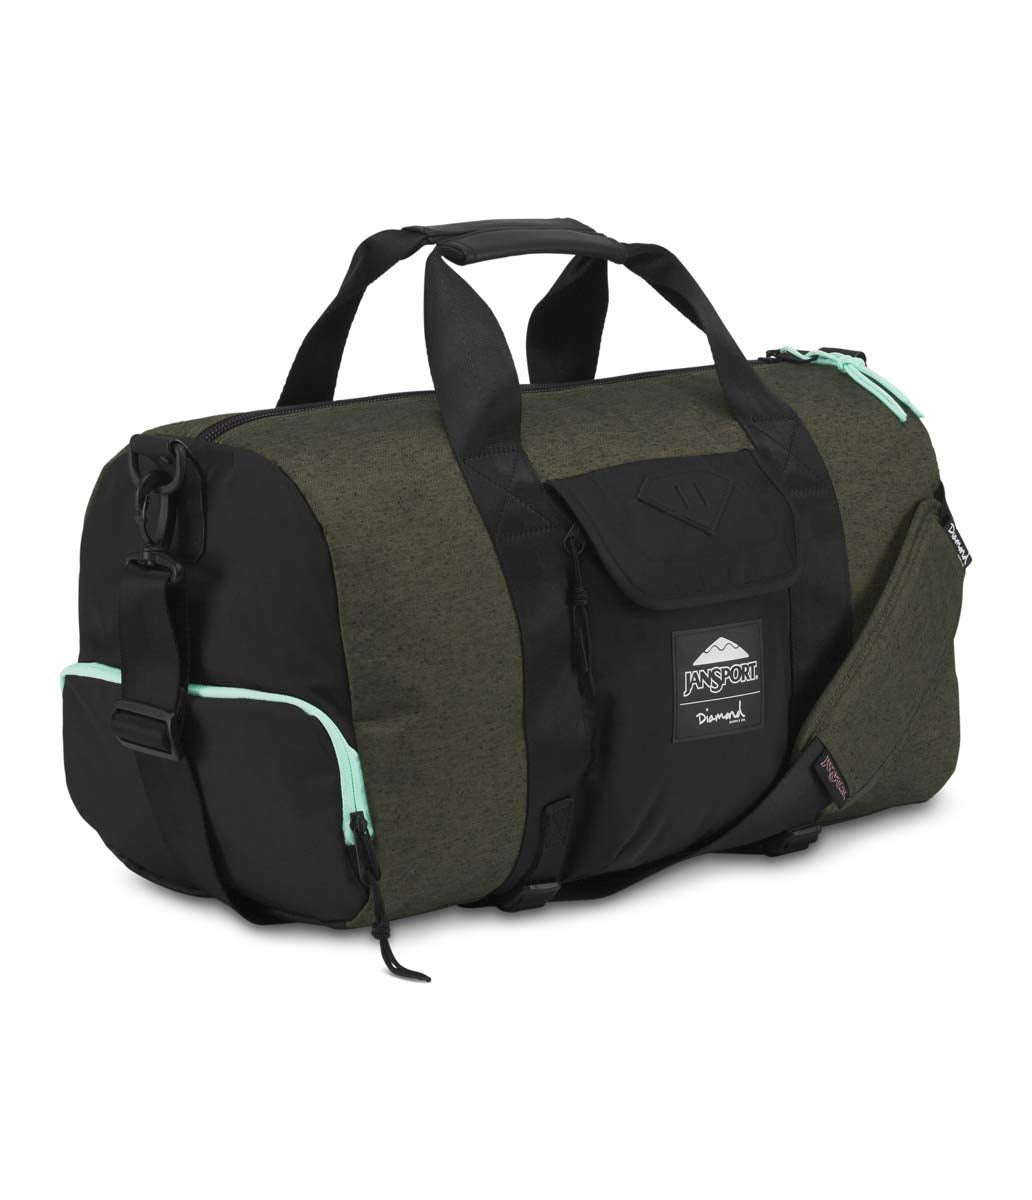 "Jansport JS 19"" Duffel Bag Green Machine"